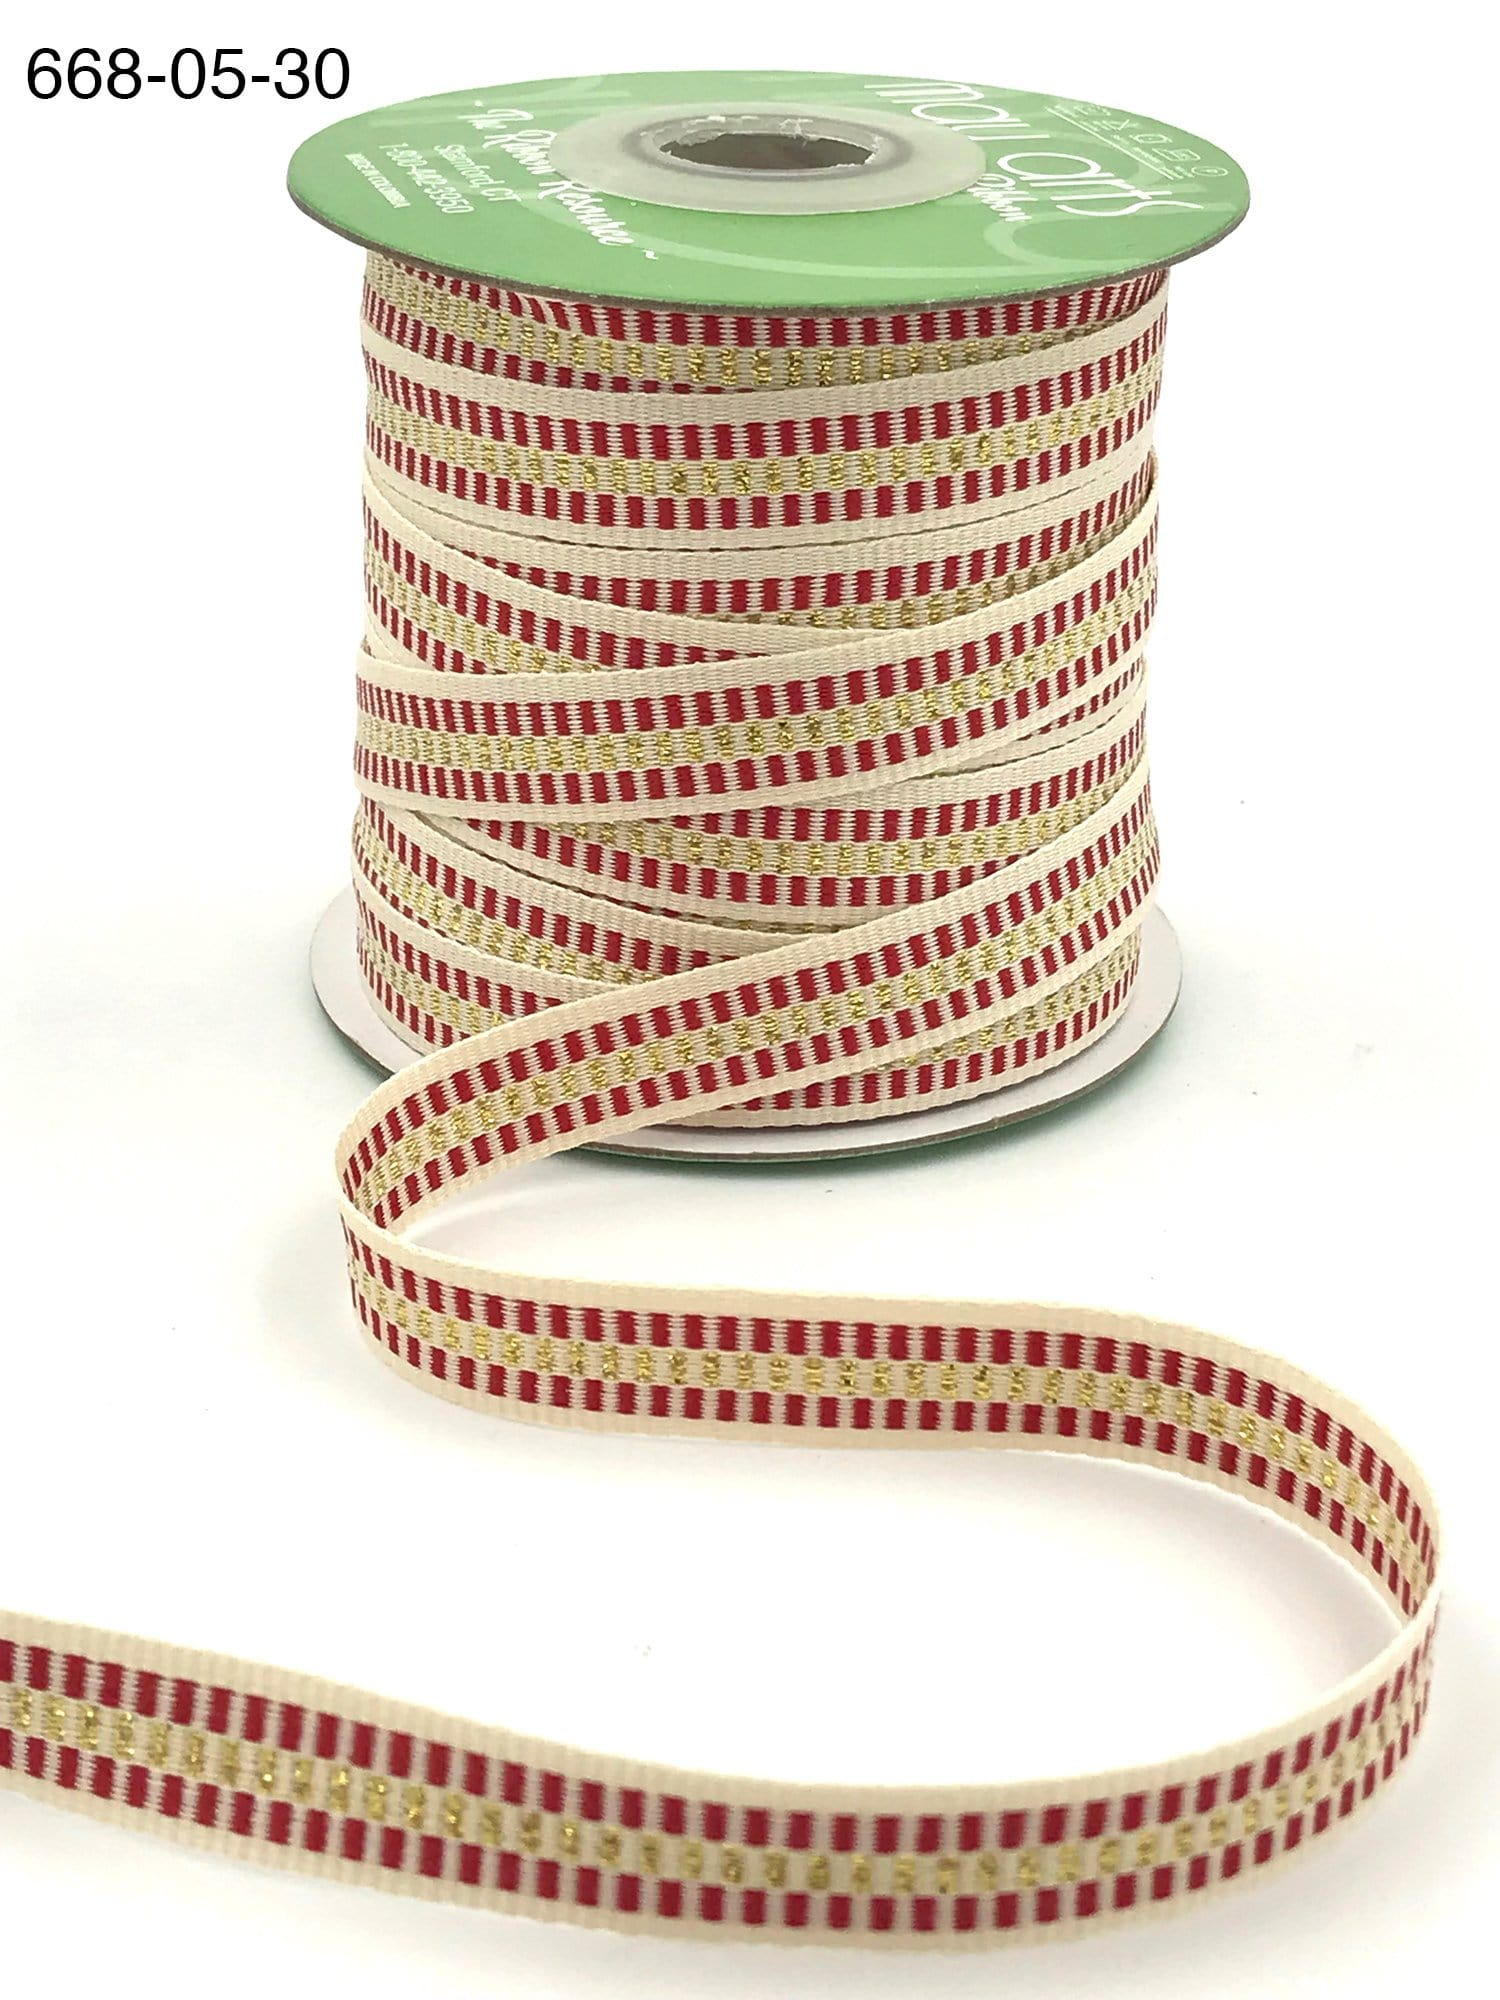 1/2 Inch Metallic Candy Cane Stripe Cotton Ribbon with Woven Edge - Gold